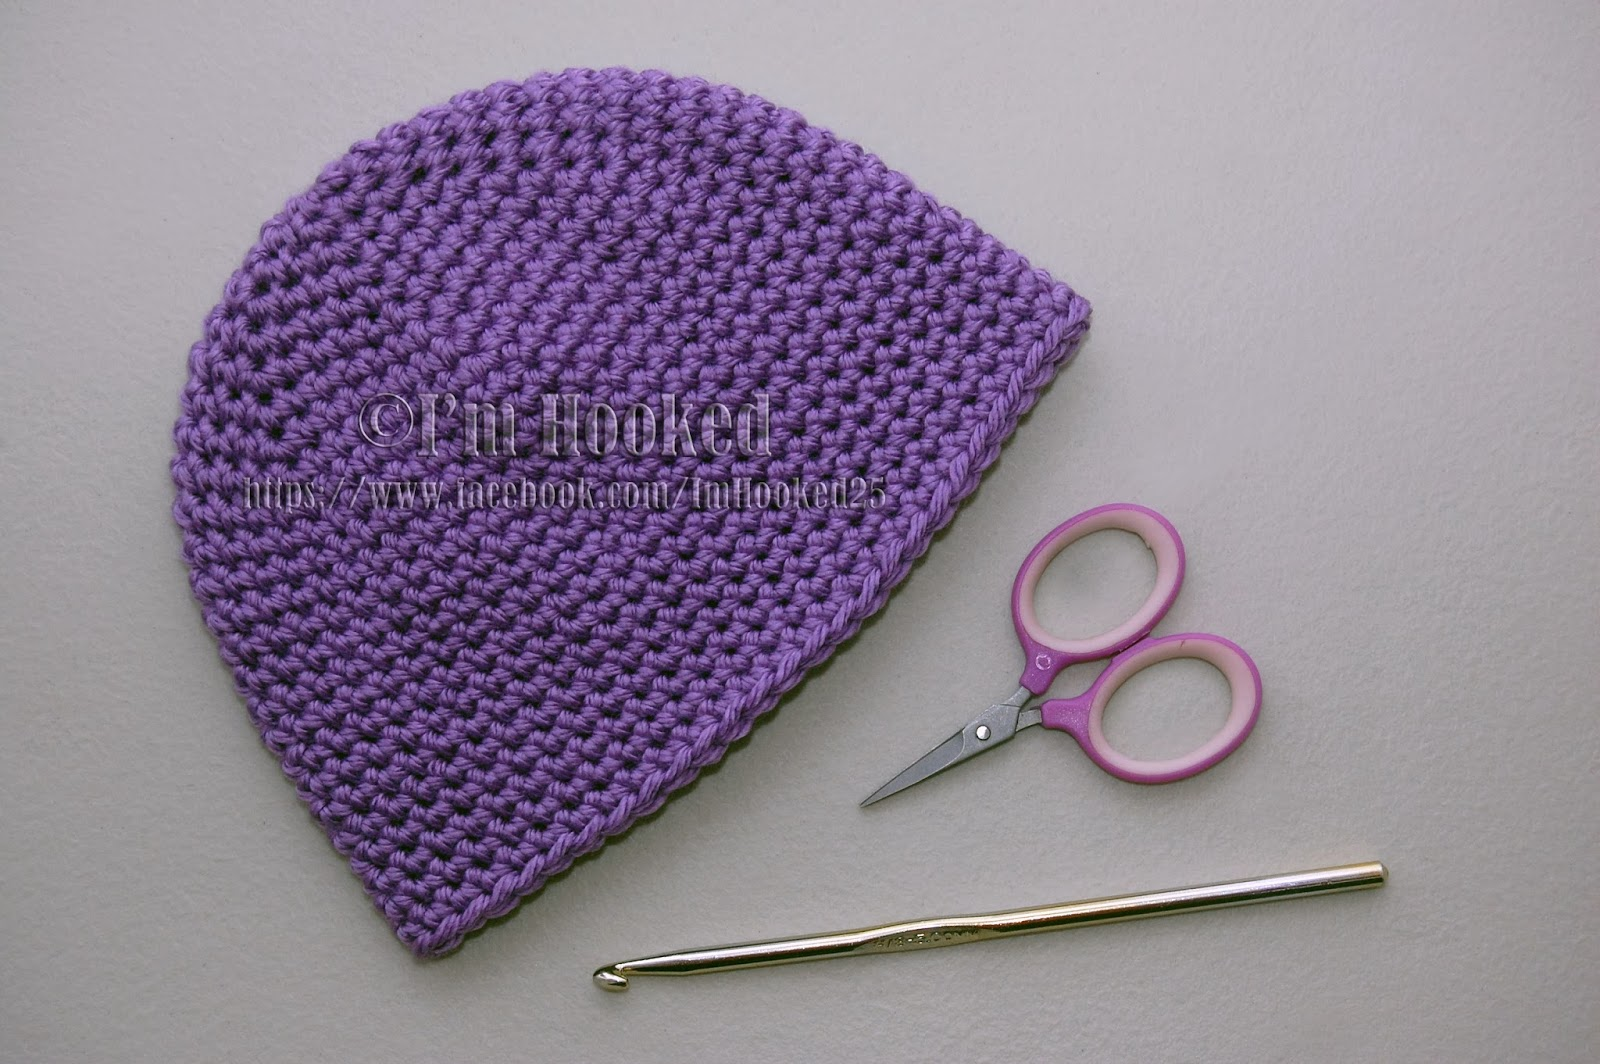 Basic Crochet Patterns : Free Crochet Pattern: Basic Beanie (Single Crochet)